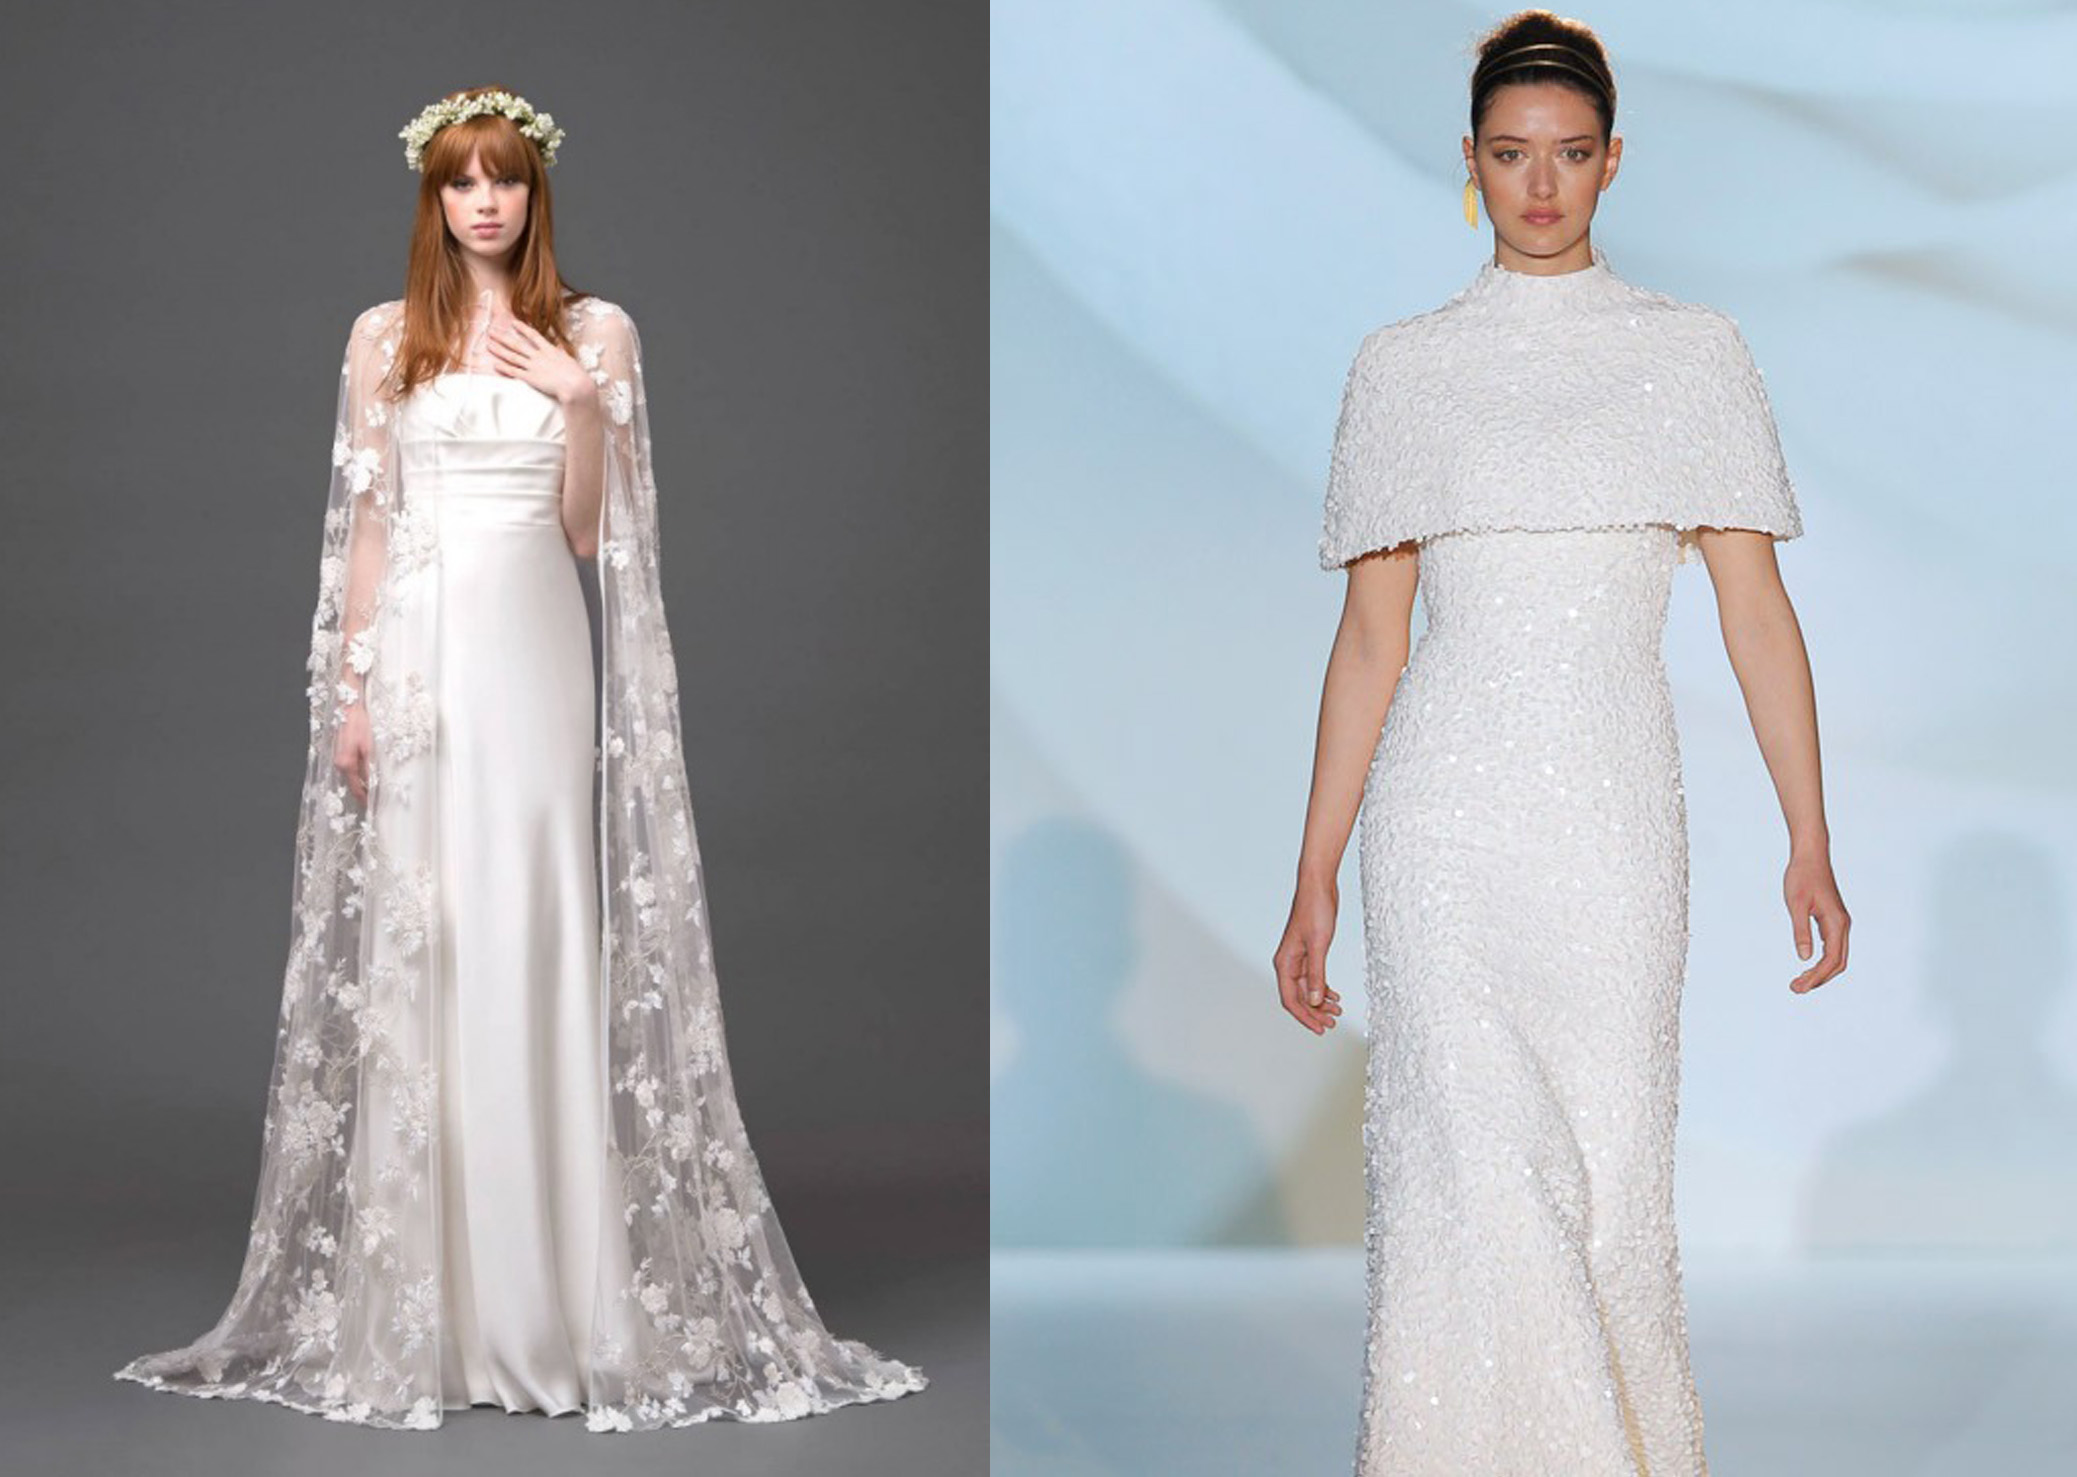 Wedding Gown With Cape: 5 Enchanting Wedding Styles Of Spring 2015 You Need To See